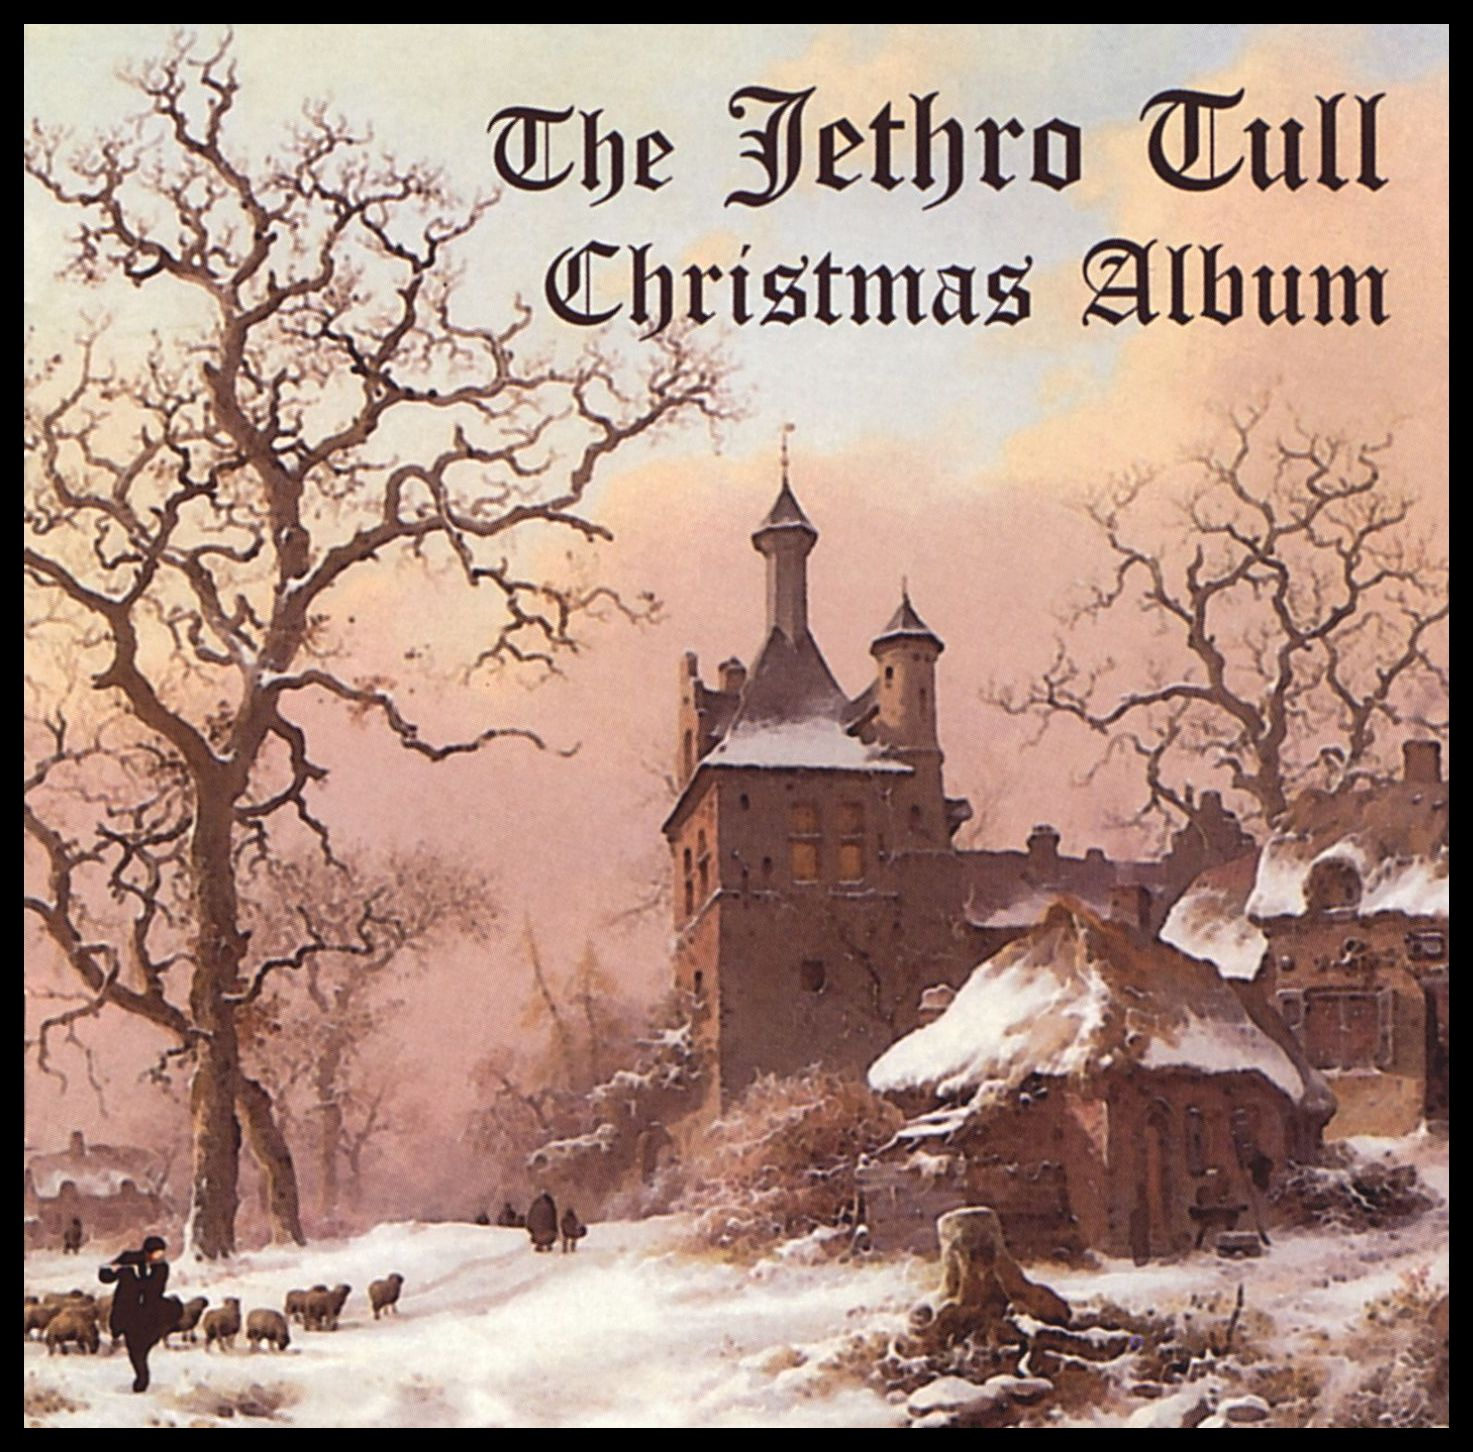 Pin by Filmscore on Album Covers | Pinterest | Jethro tull, Album ...